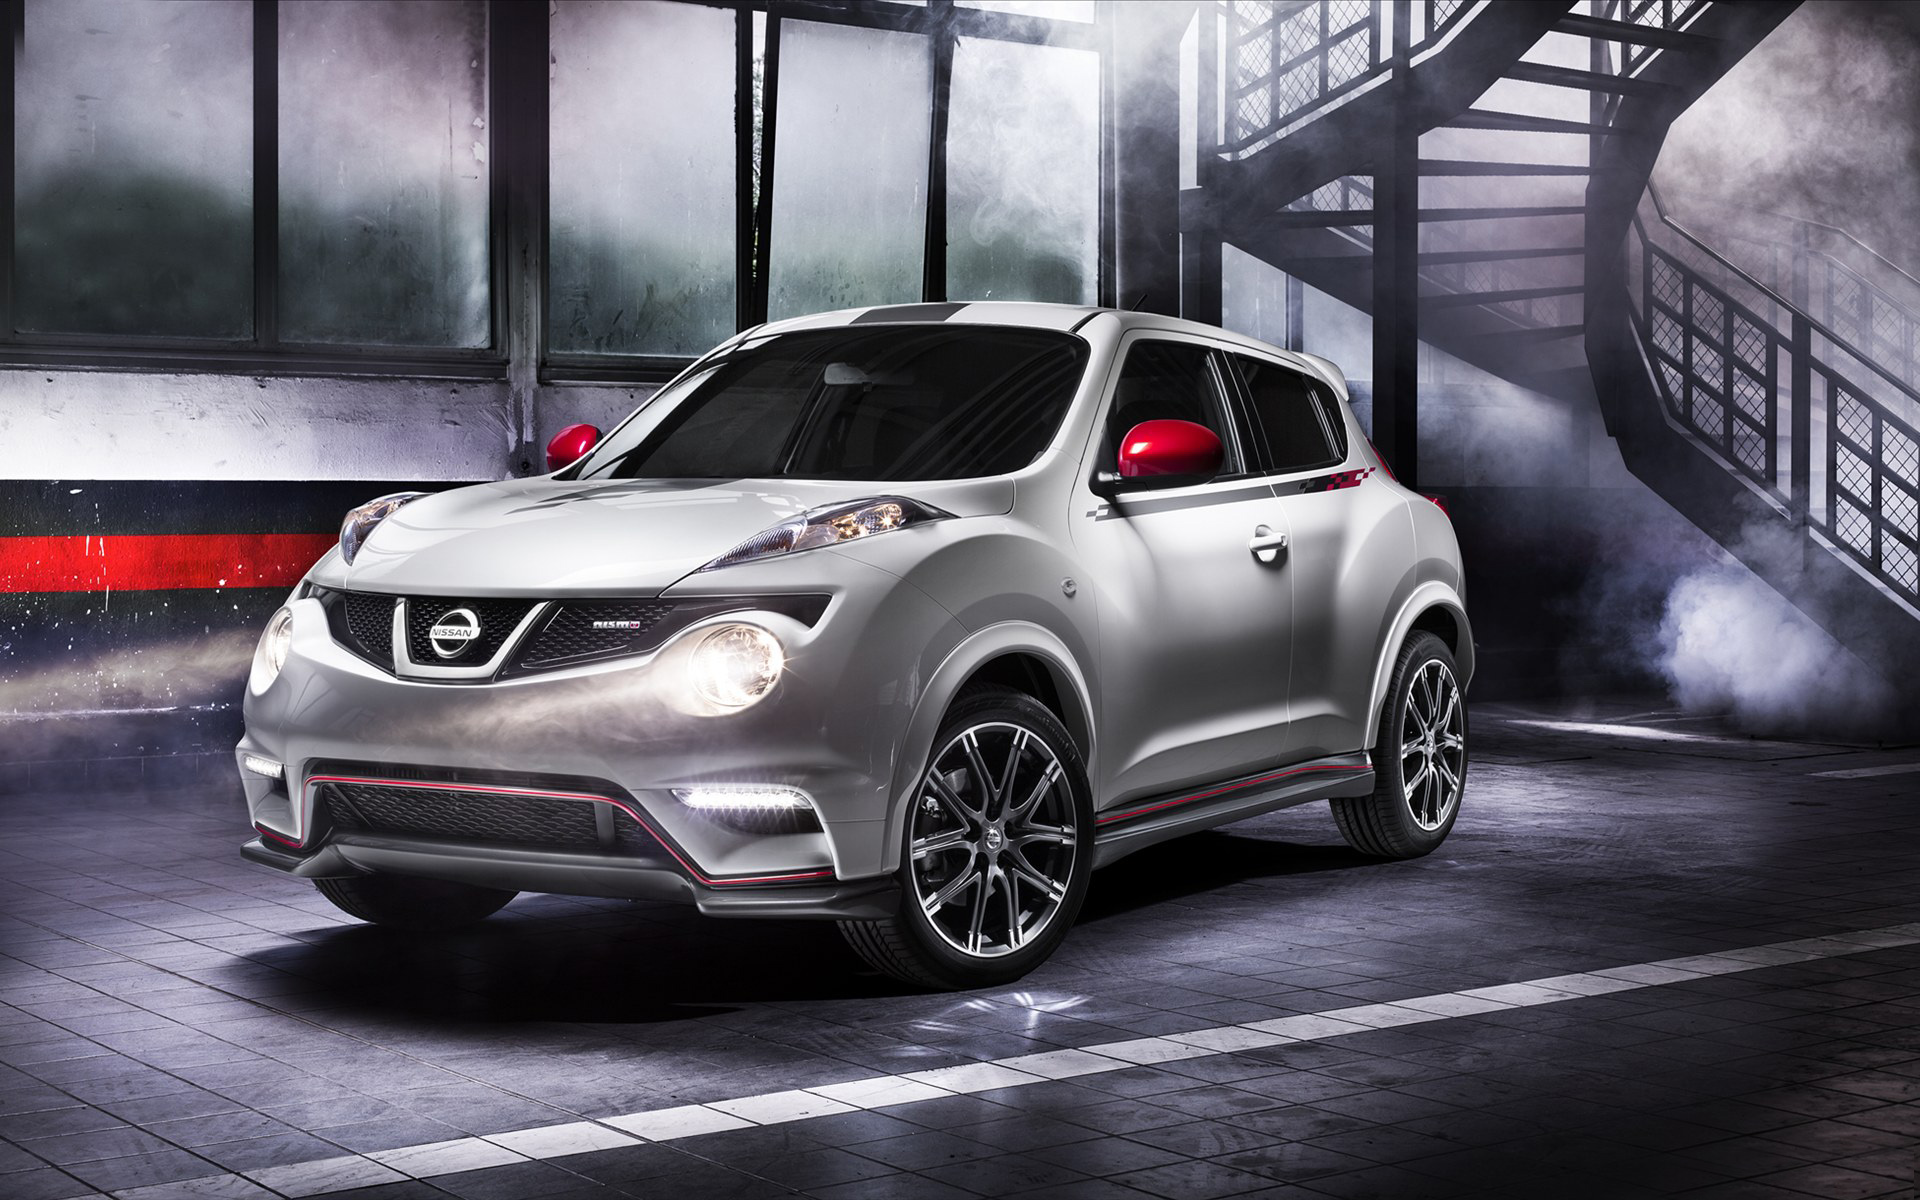 Nissan Juke Nismo 2013 Wallpaper Hd Car Wallpapers